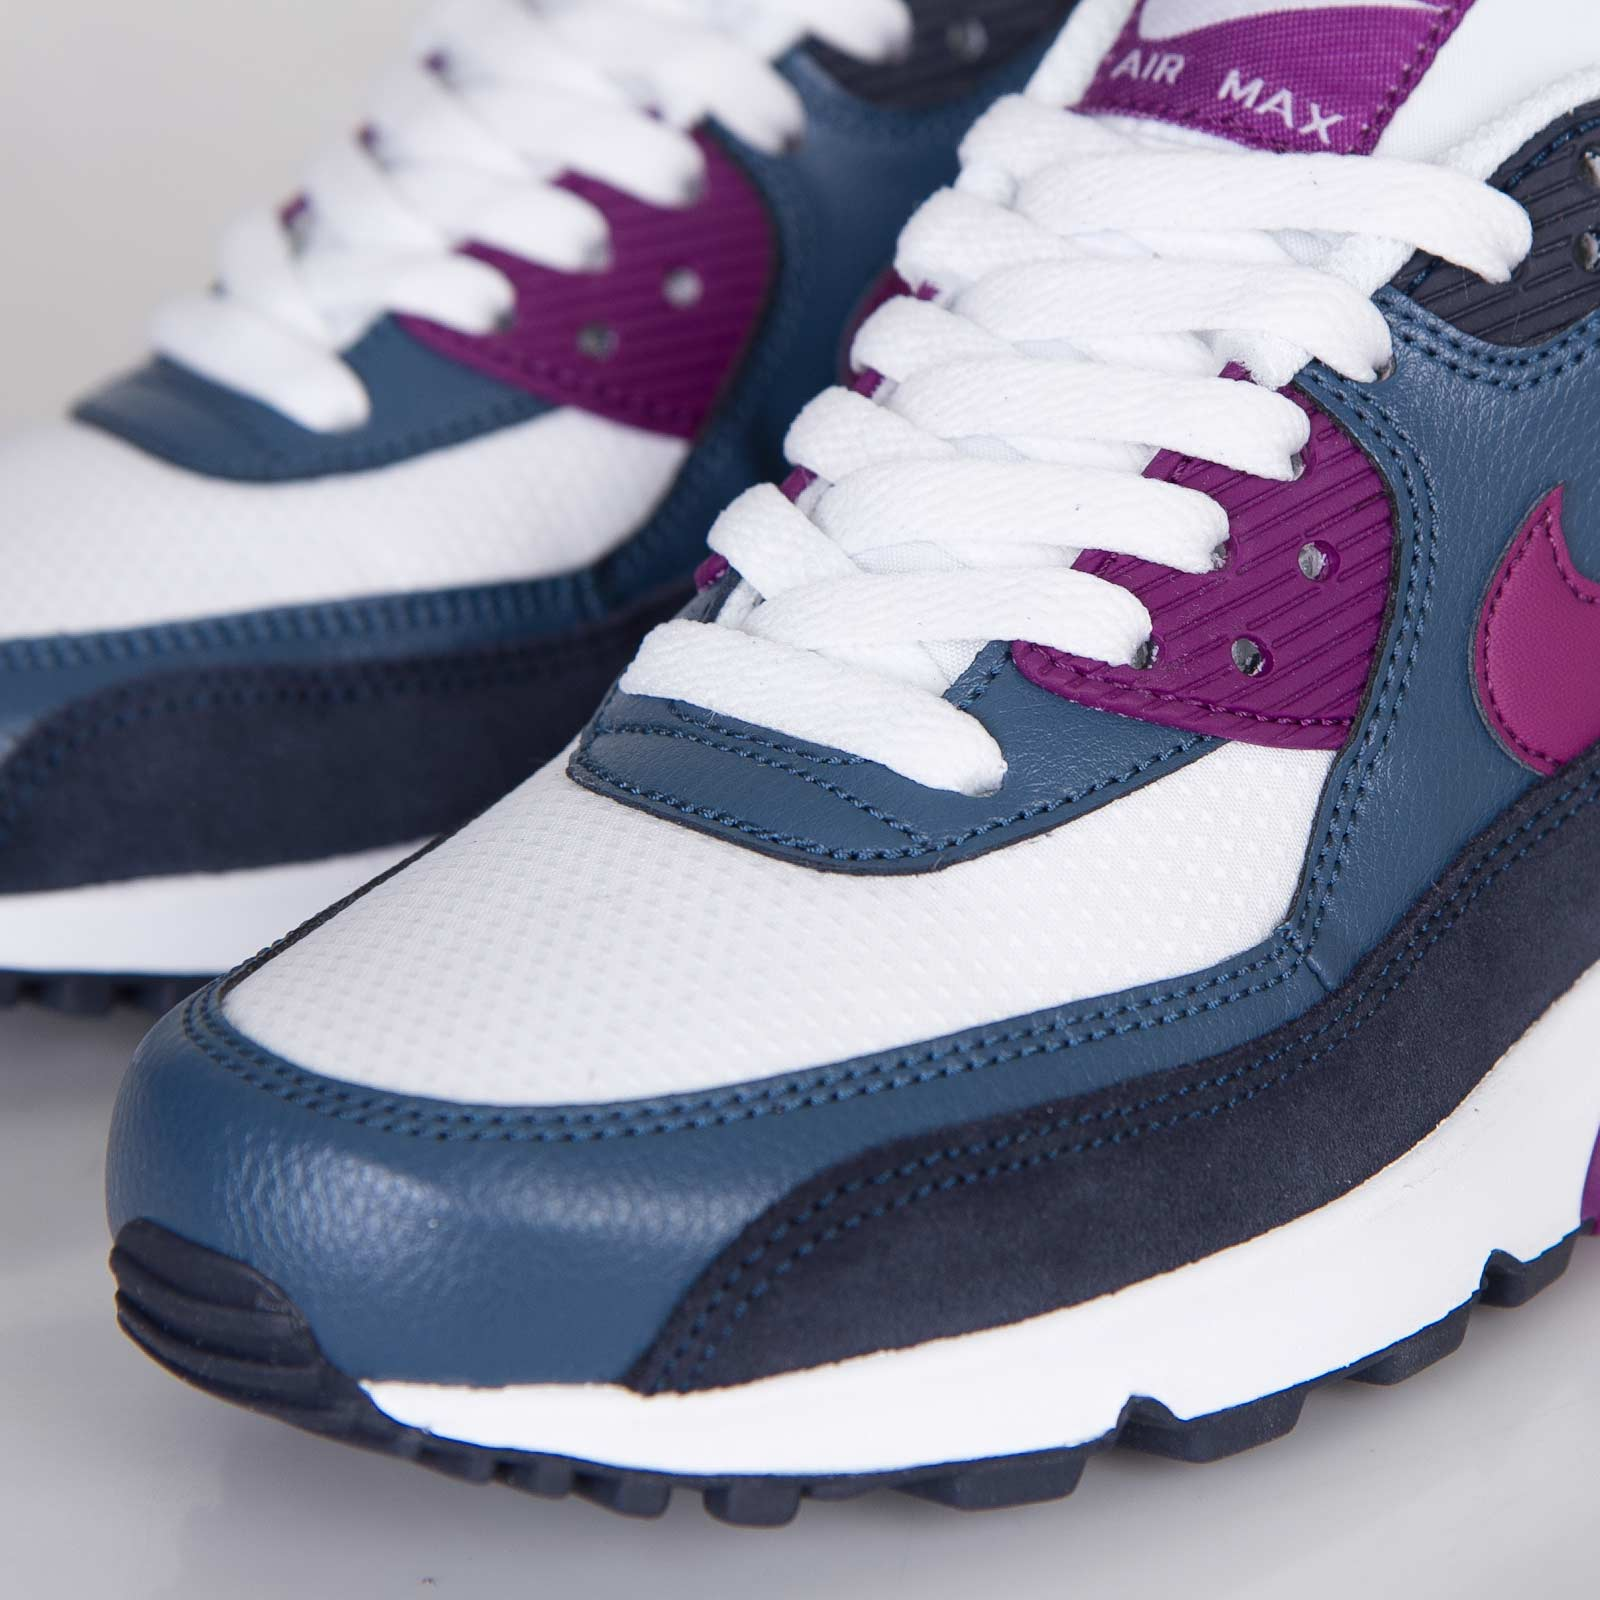 newest collection 5398a 812d5 ... Nike Wmns Air Max 90 Essential ...